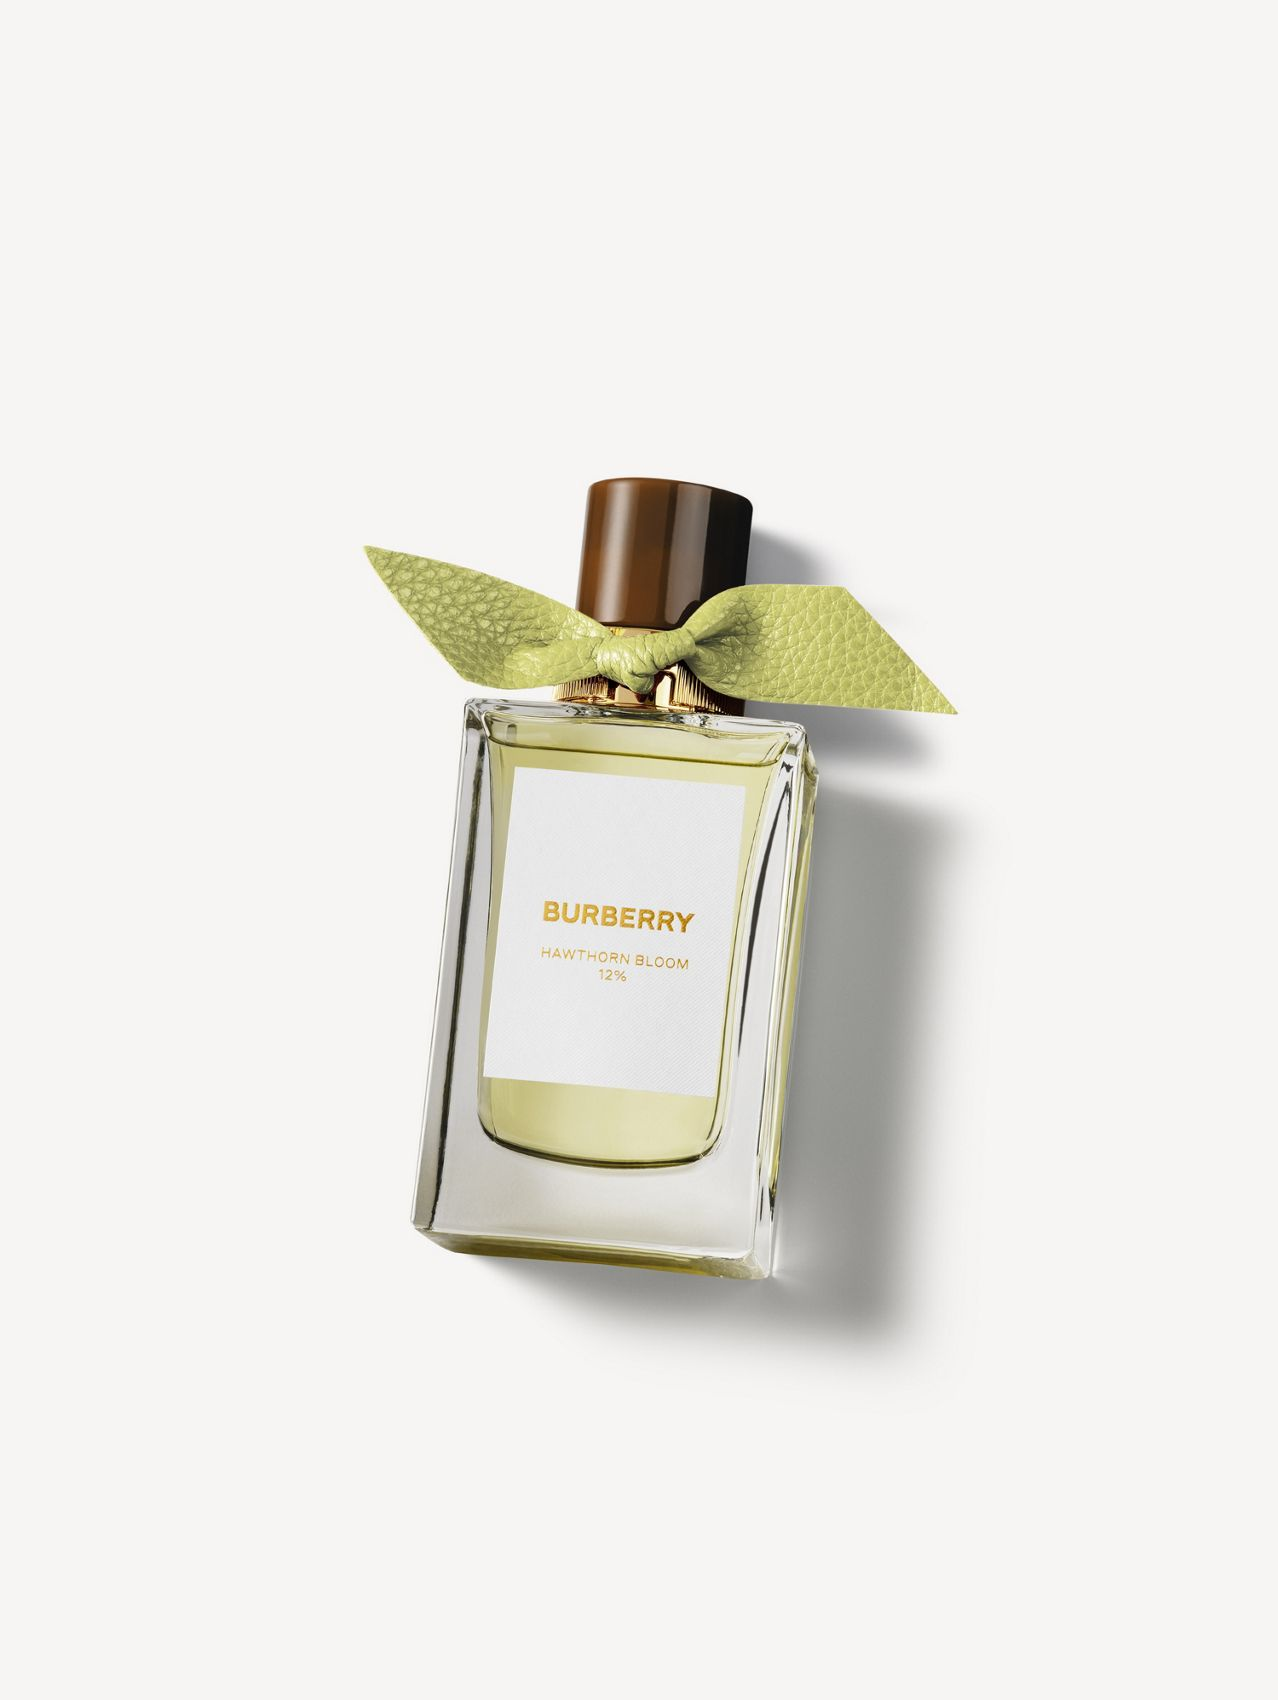 Burberry Signatures Hawthorn Bloom Eau de Parfum 100ml